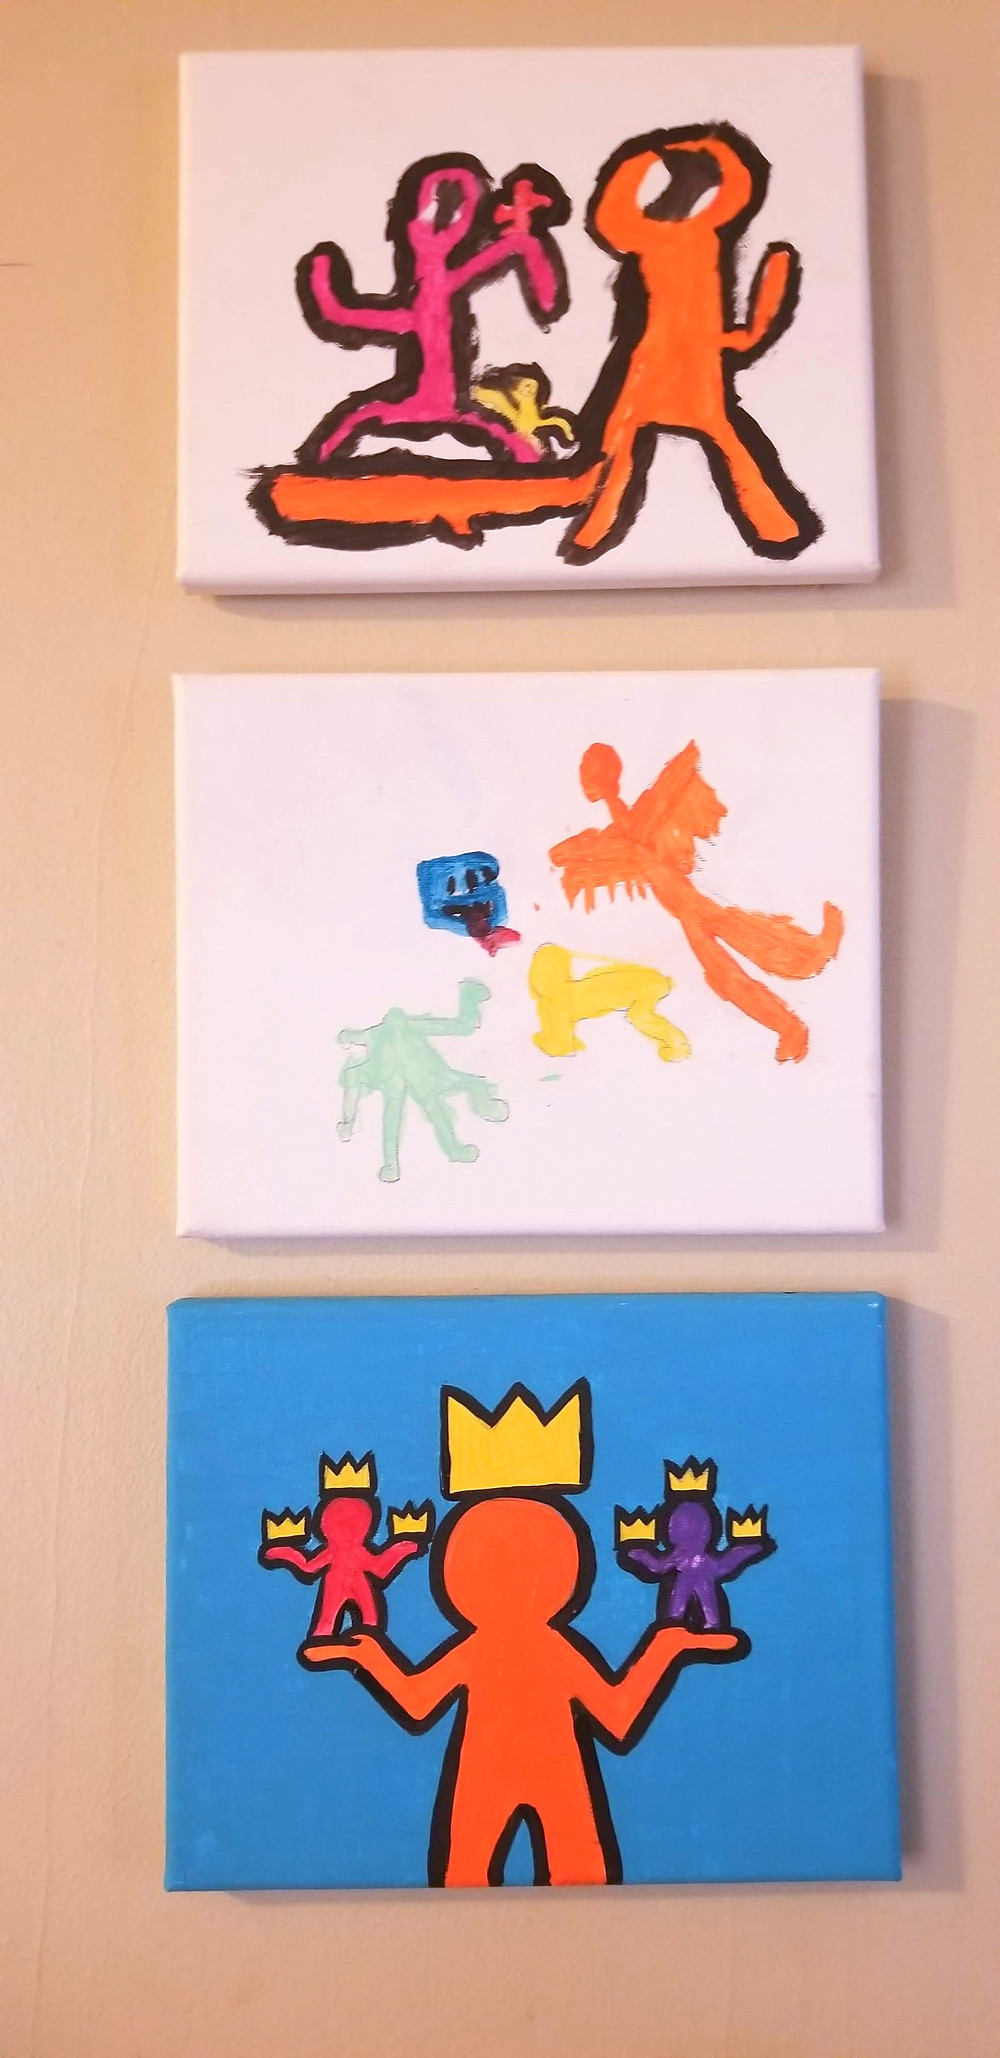 Three paintings inspired by Keith Haring hanging on the wall.